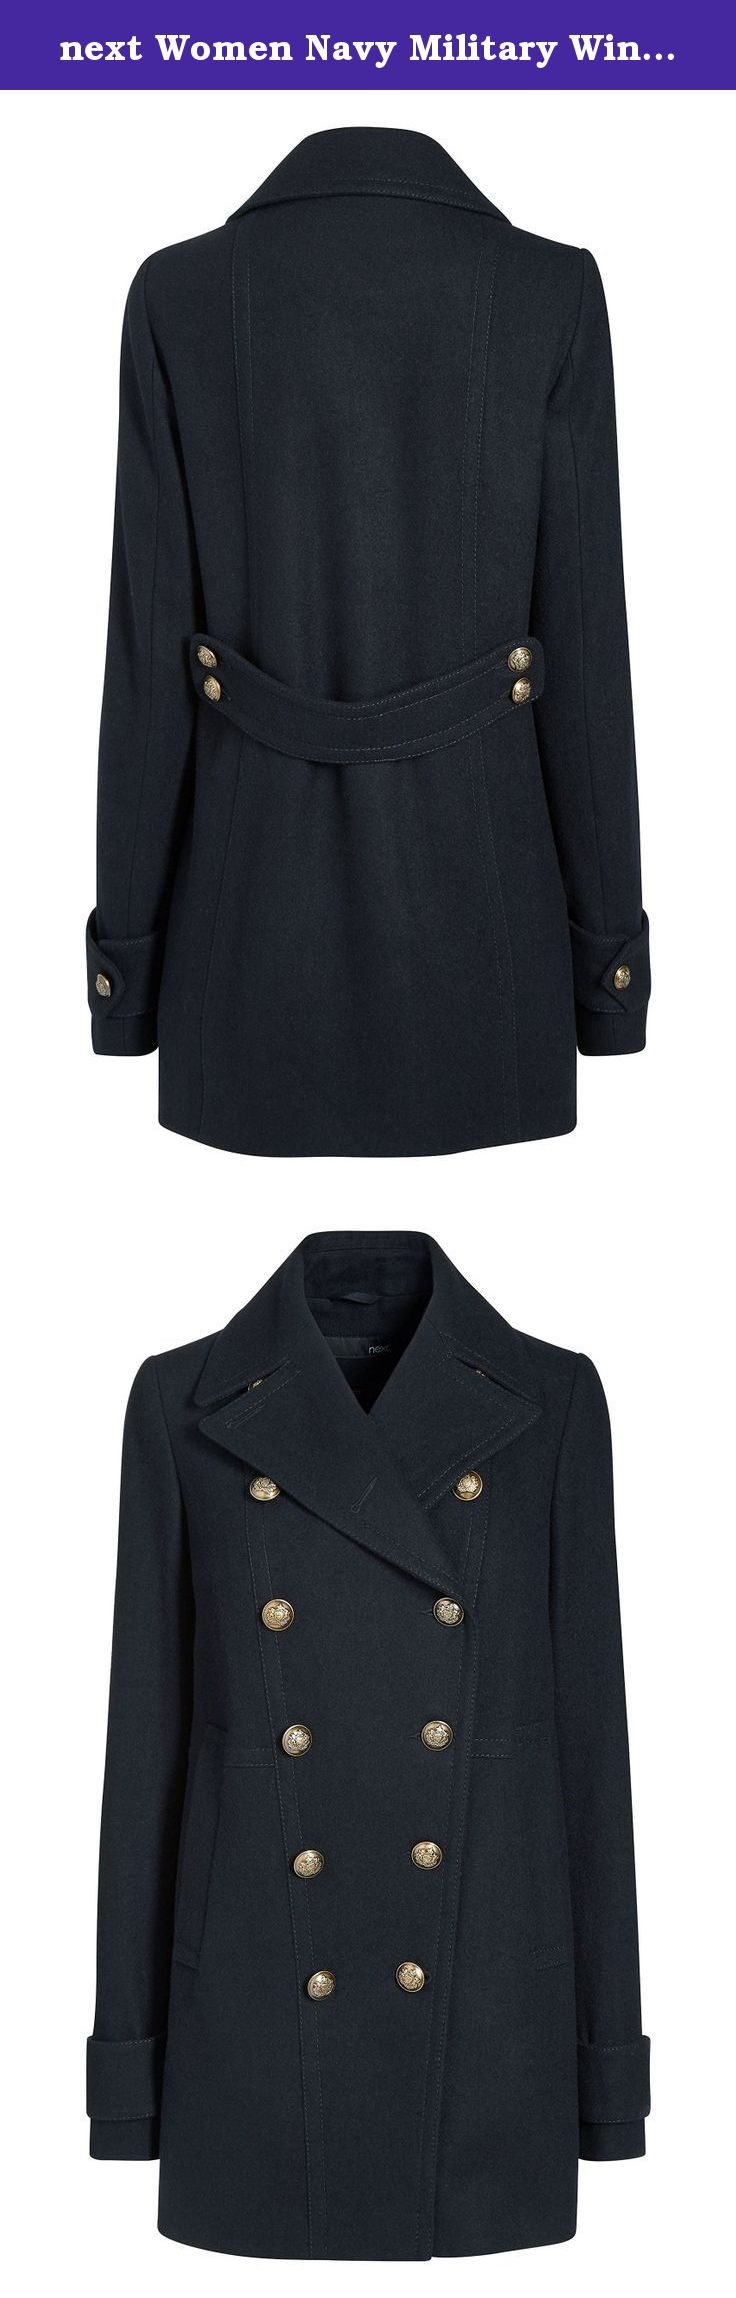 next Women Navy Military Winter Warm Pea Coat Top Petite Fit ...